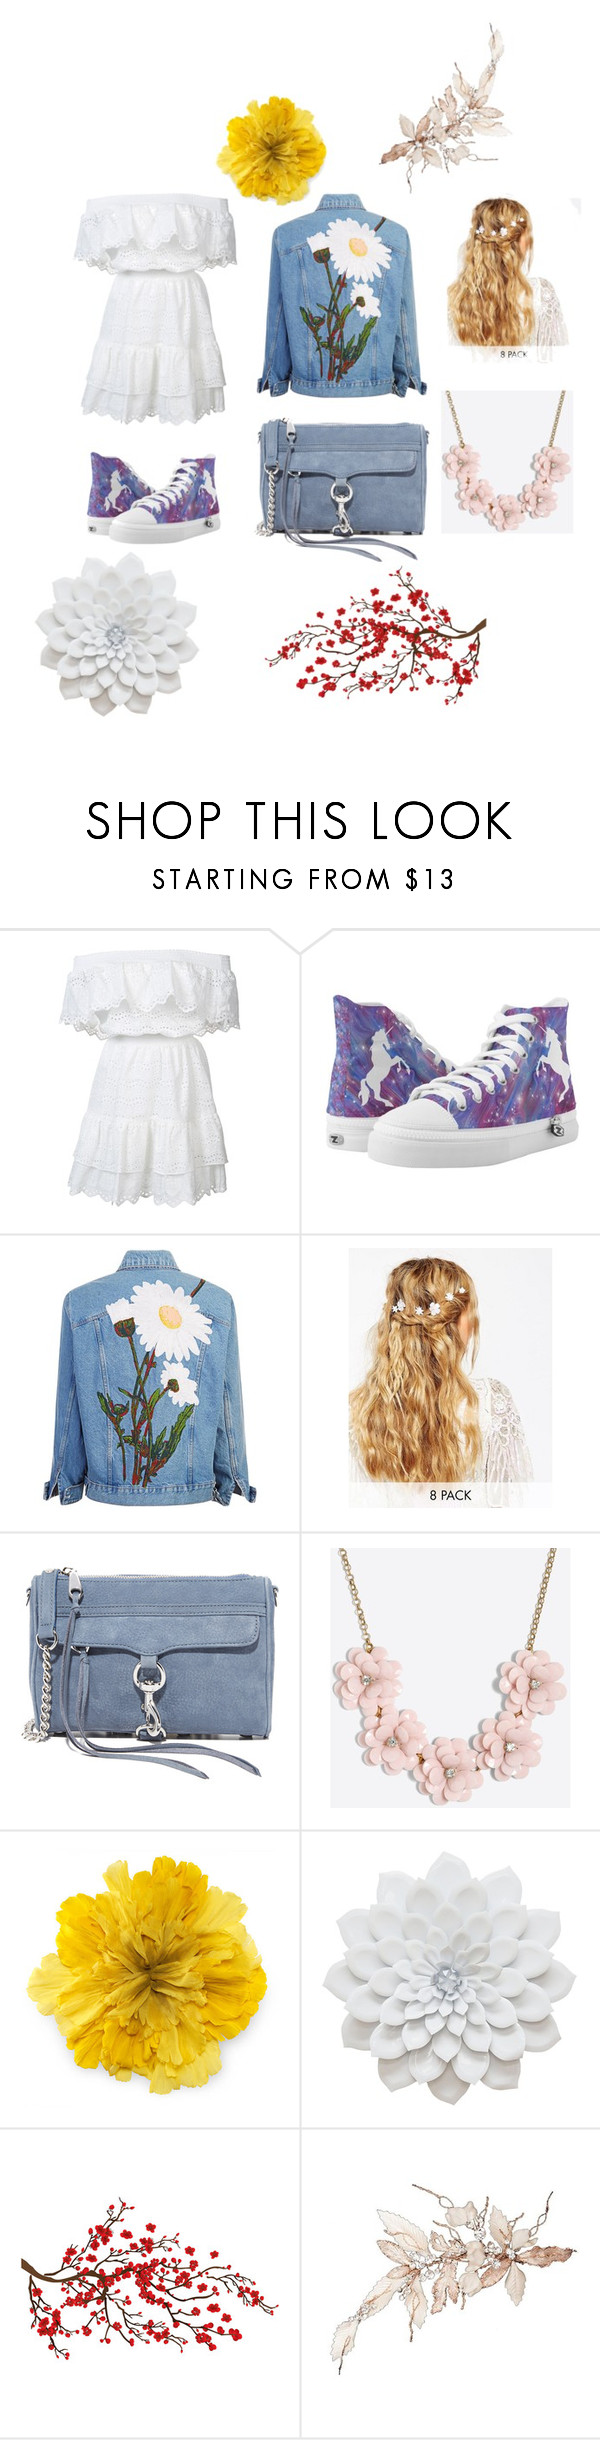 """""""flower power"""" by sarinadu ❤ liked on Polyvore featuring LoveShackFancy, ASOS, Rebecca Minkoff, J.Crew, Gucci and Brewster Home Fashions"""